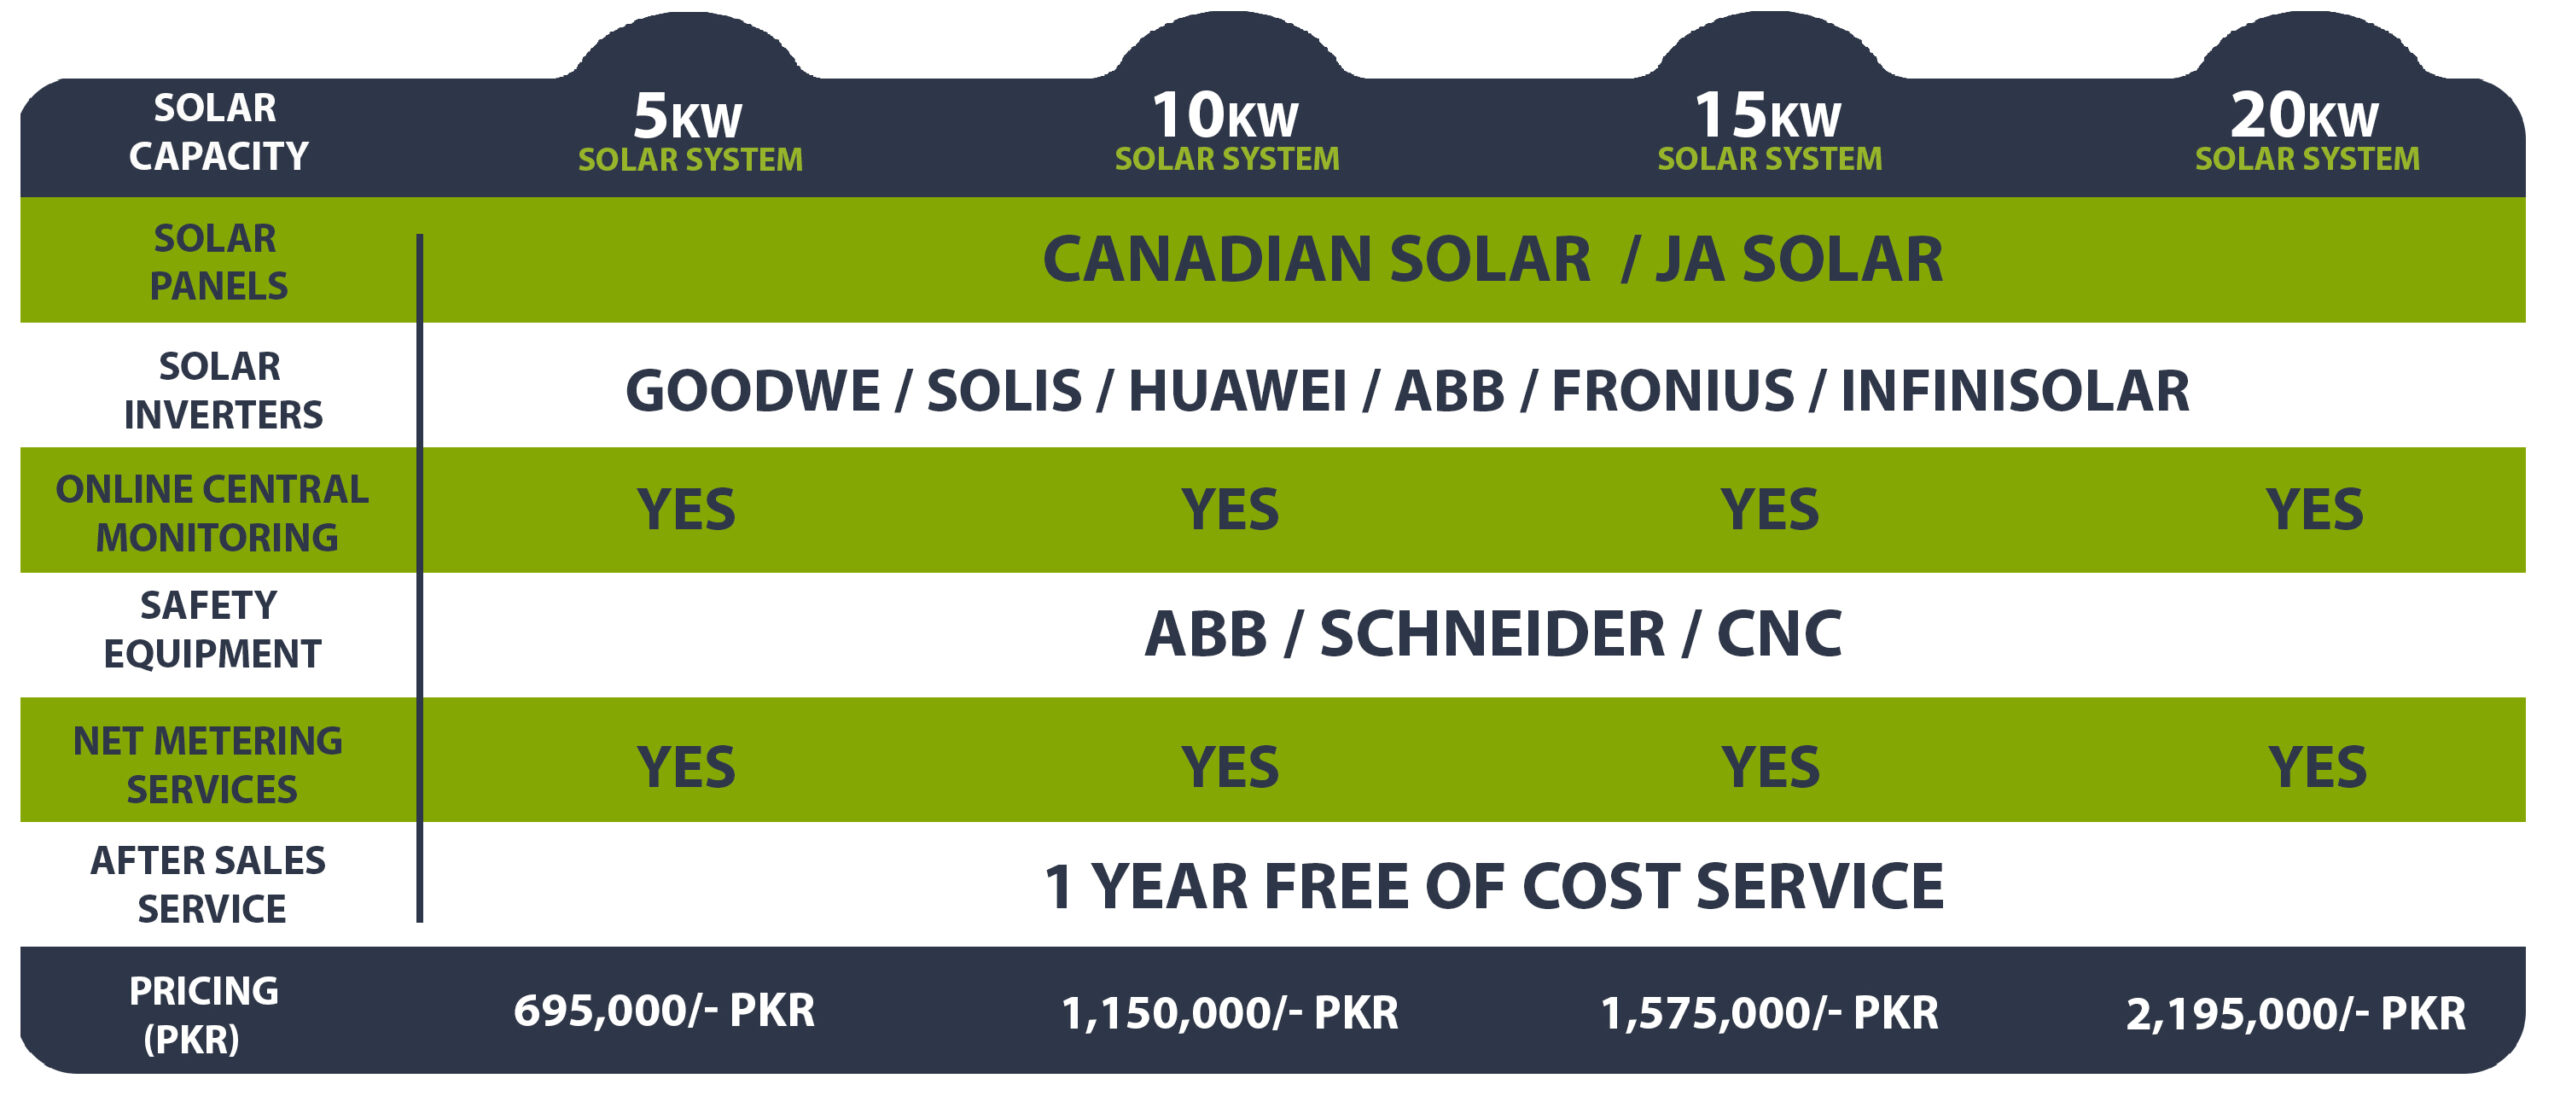 Solar Systems Price in Pakistan